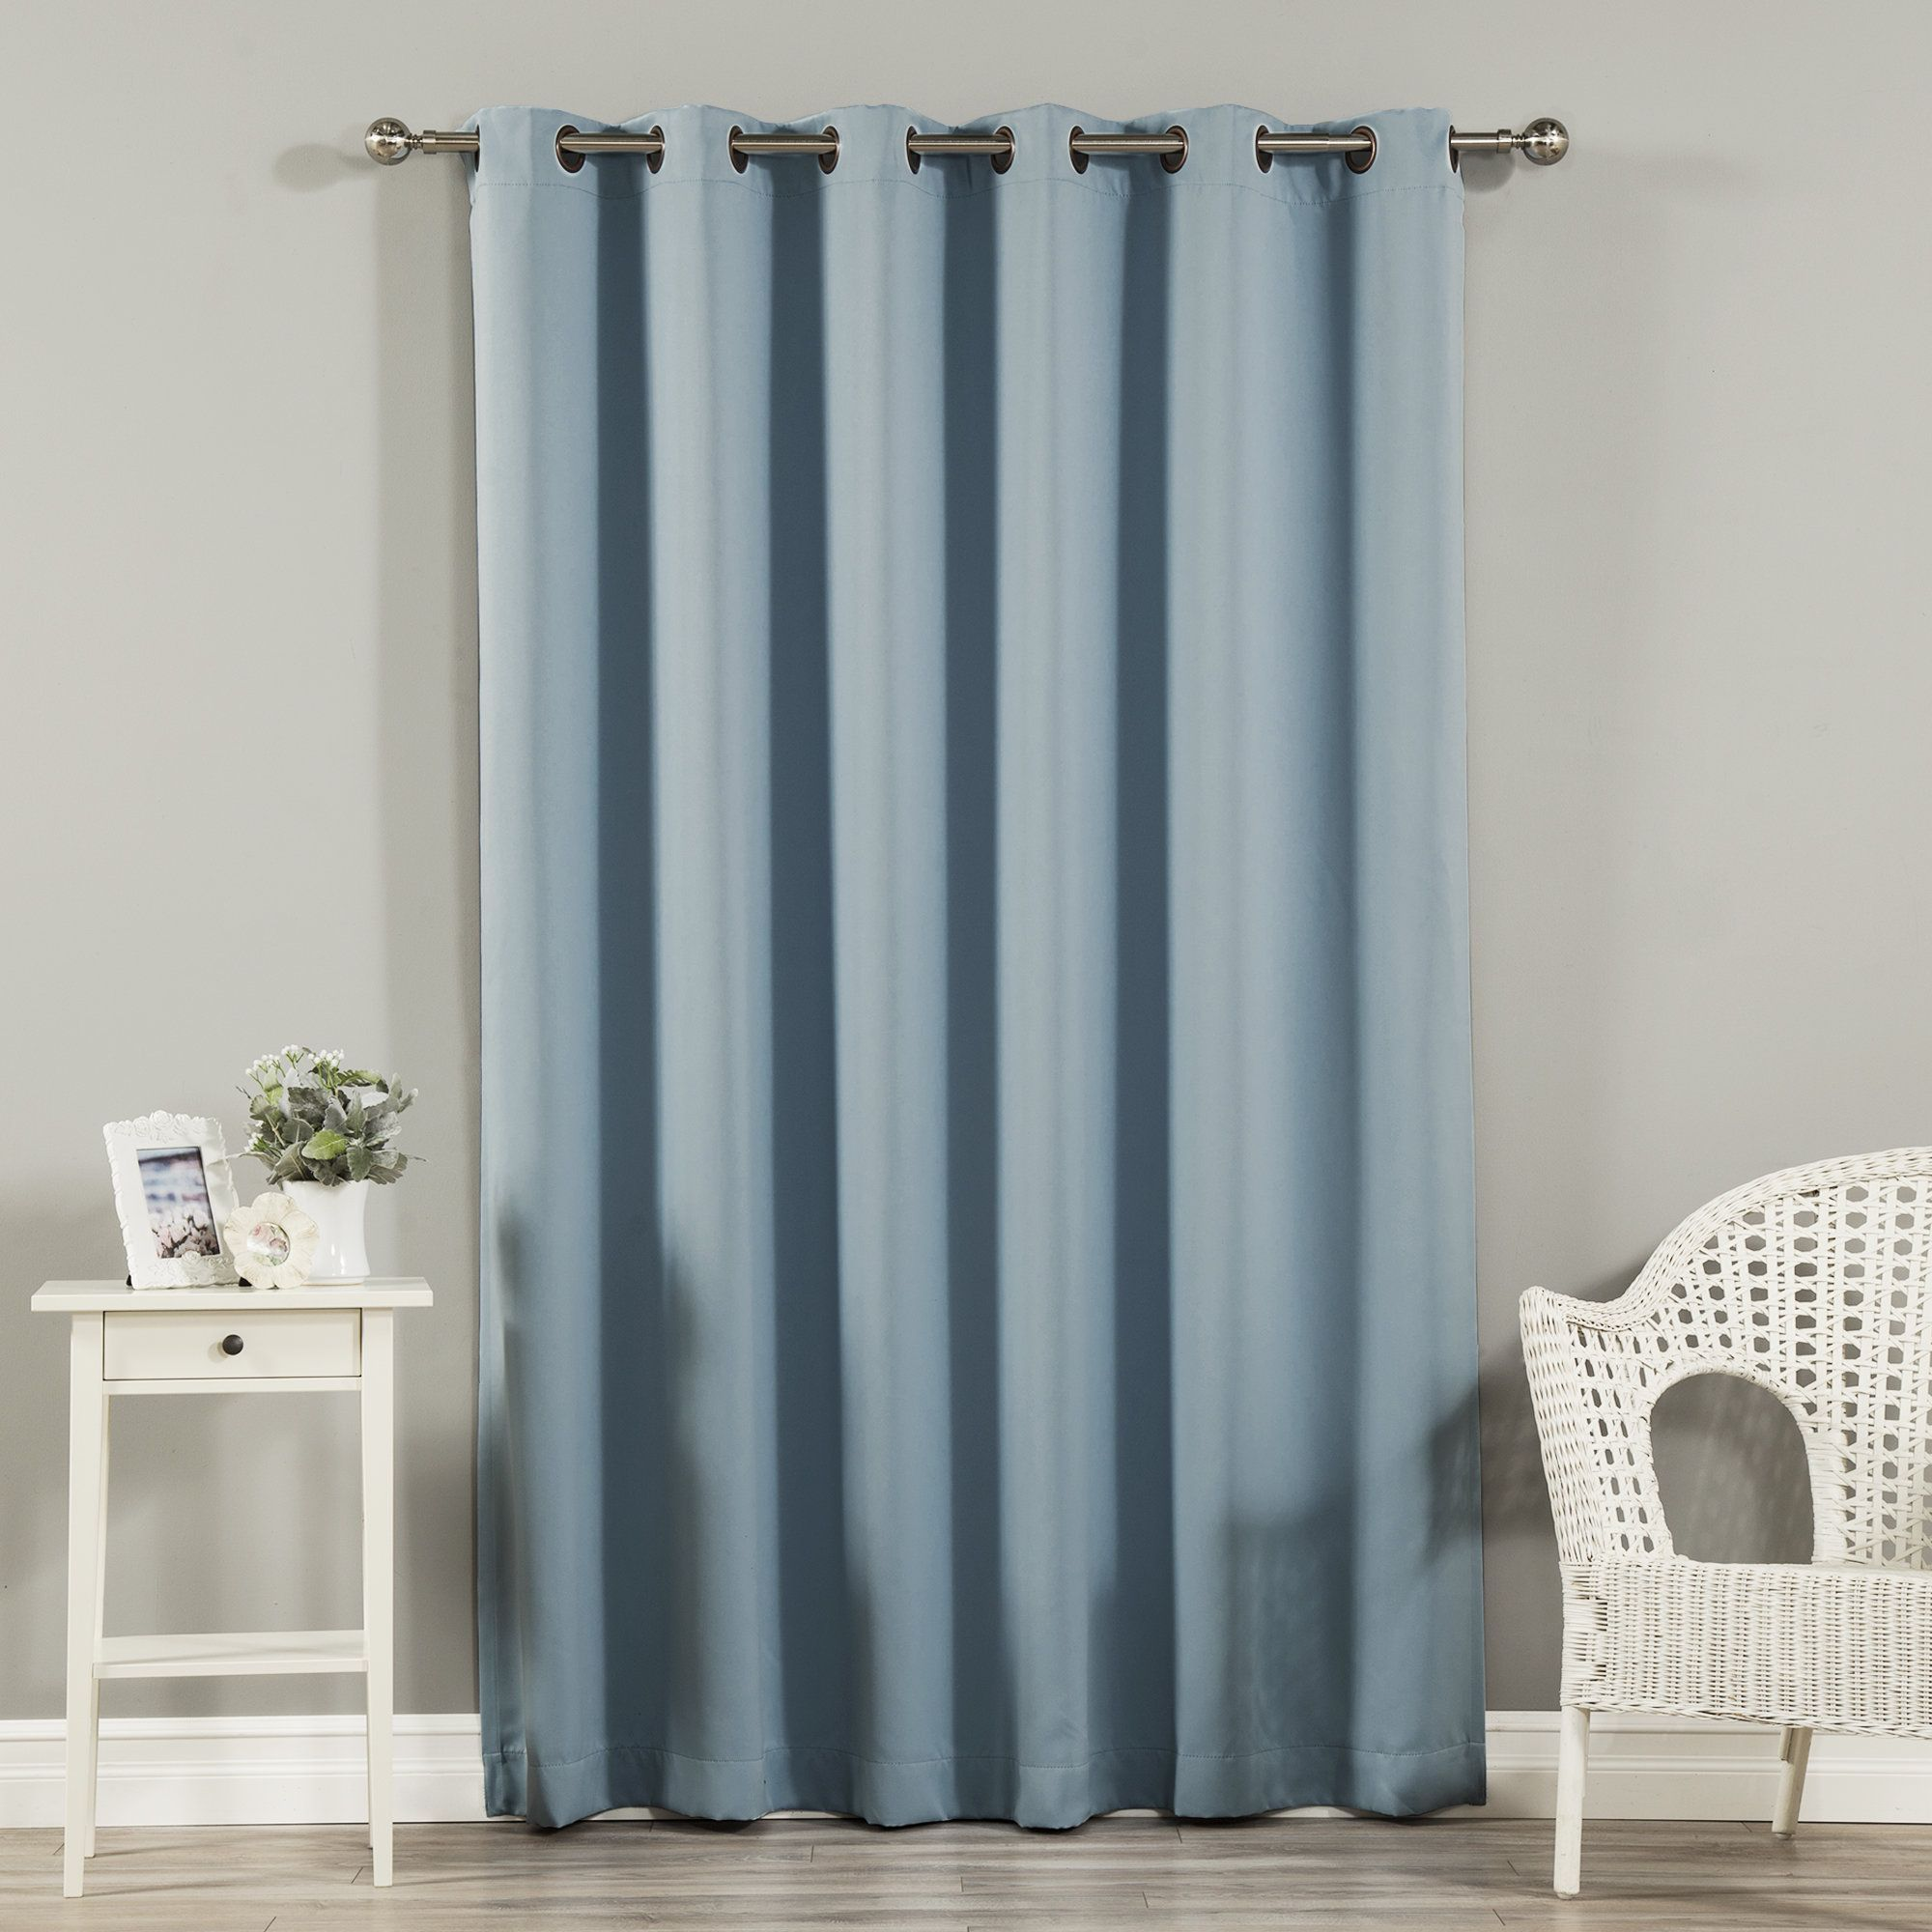 drapes extra width panels windows imagination best unusual curtain for rods wide drapery curtains